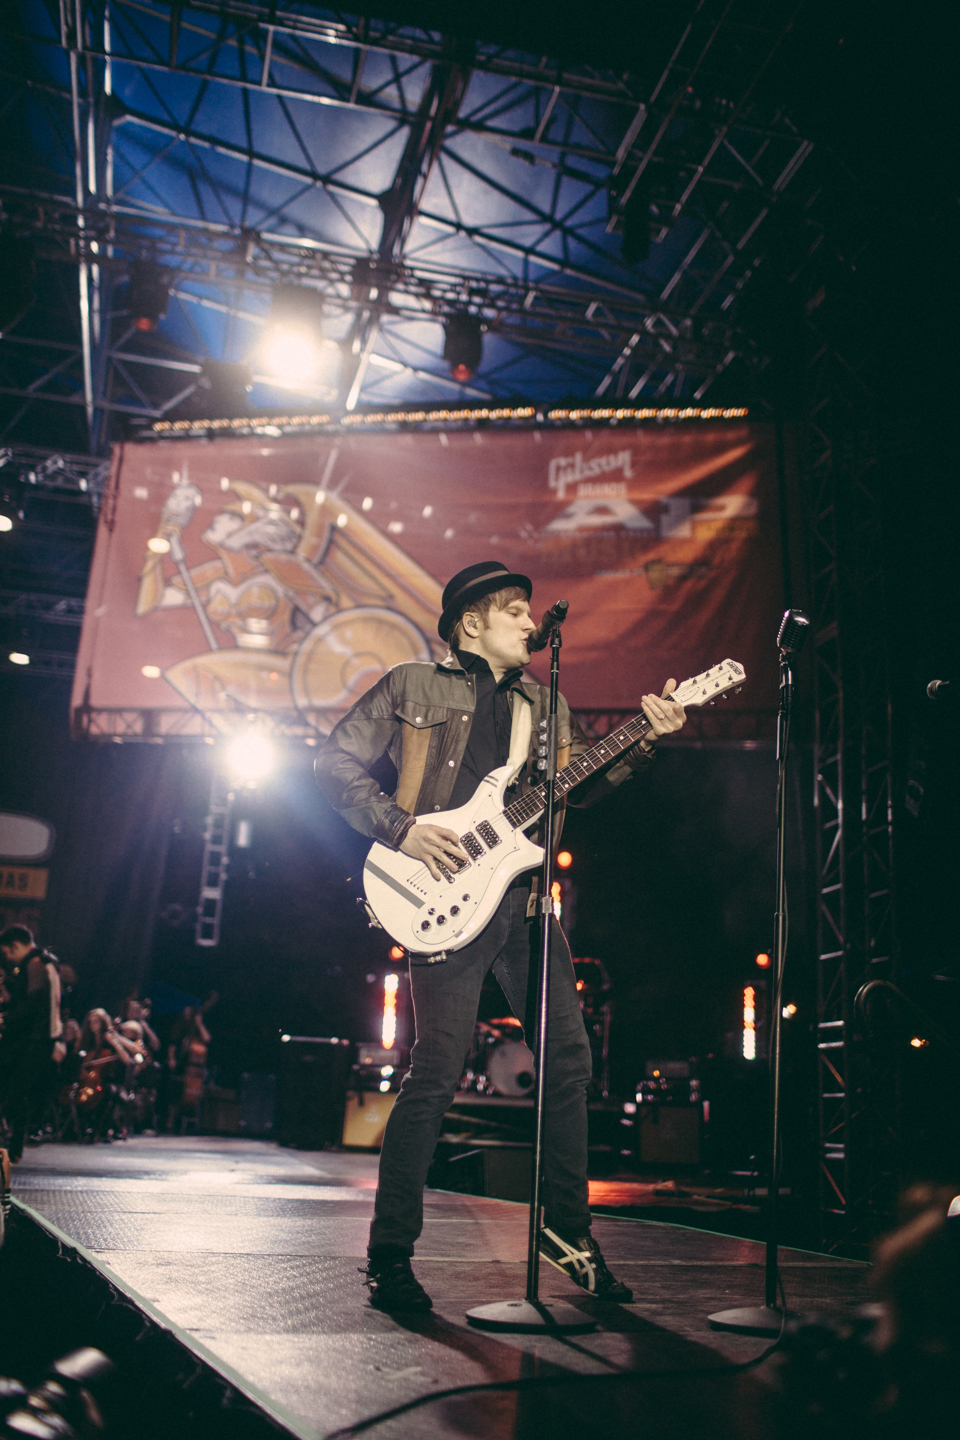 Patrick Stump of Fall Out Boy performing